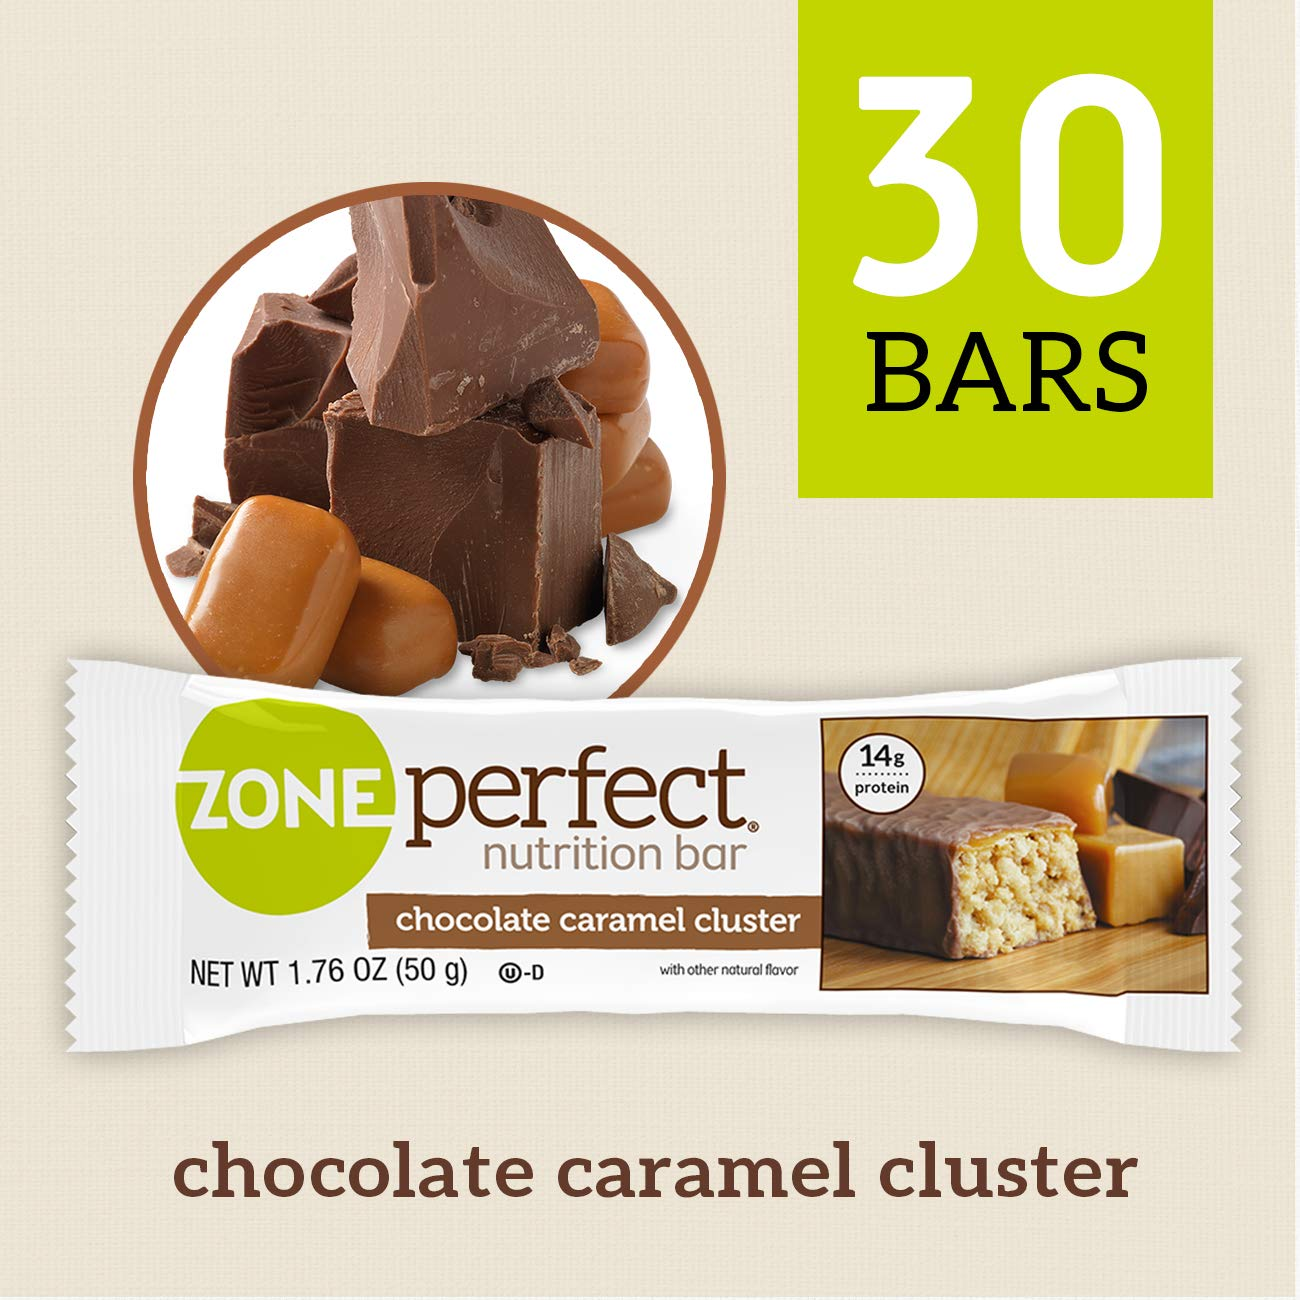 ZonePerfect Nutrition Snack Bars, Chocolate Caramel Cluster, 14g high-quality protein, 1.41 oz, 30 count